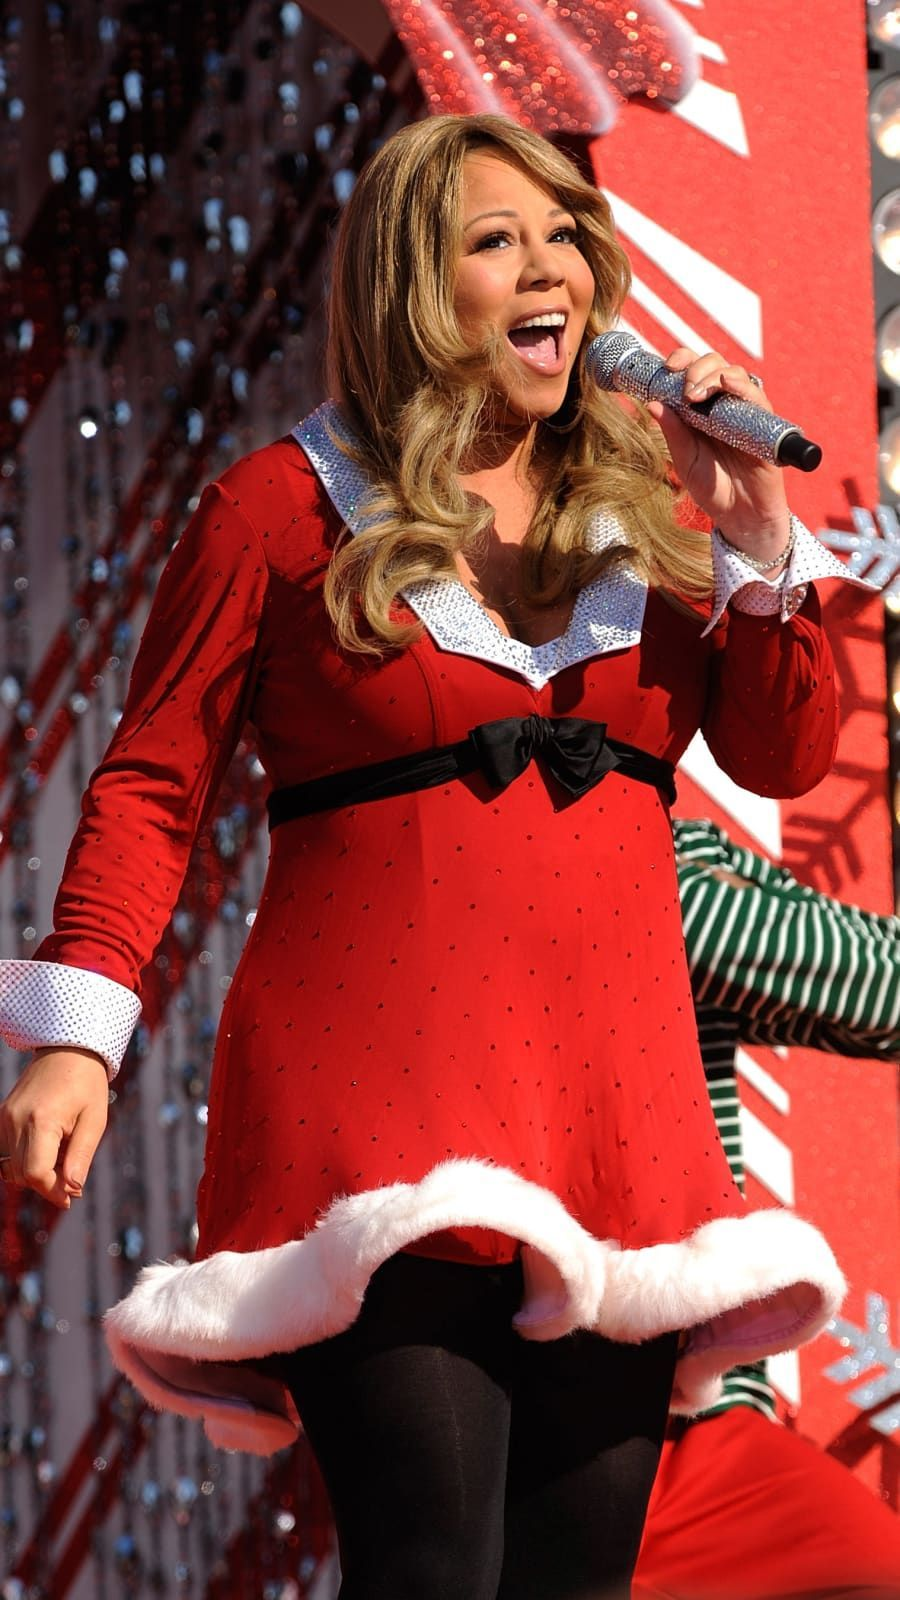 The Best Christmas Albums Of All Time in 2020 Outfit